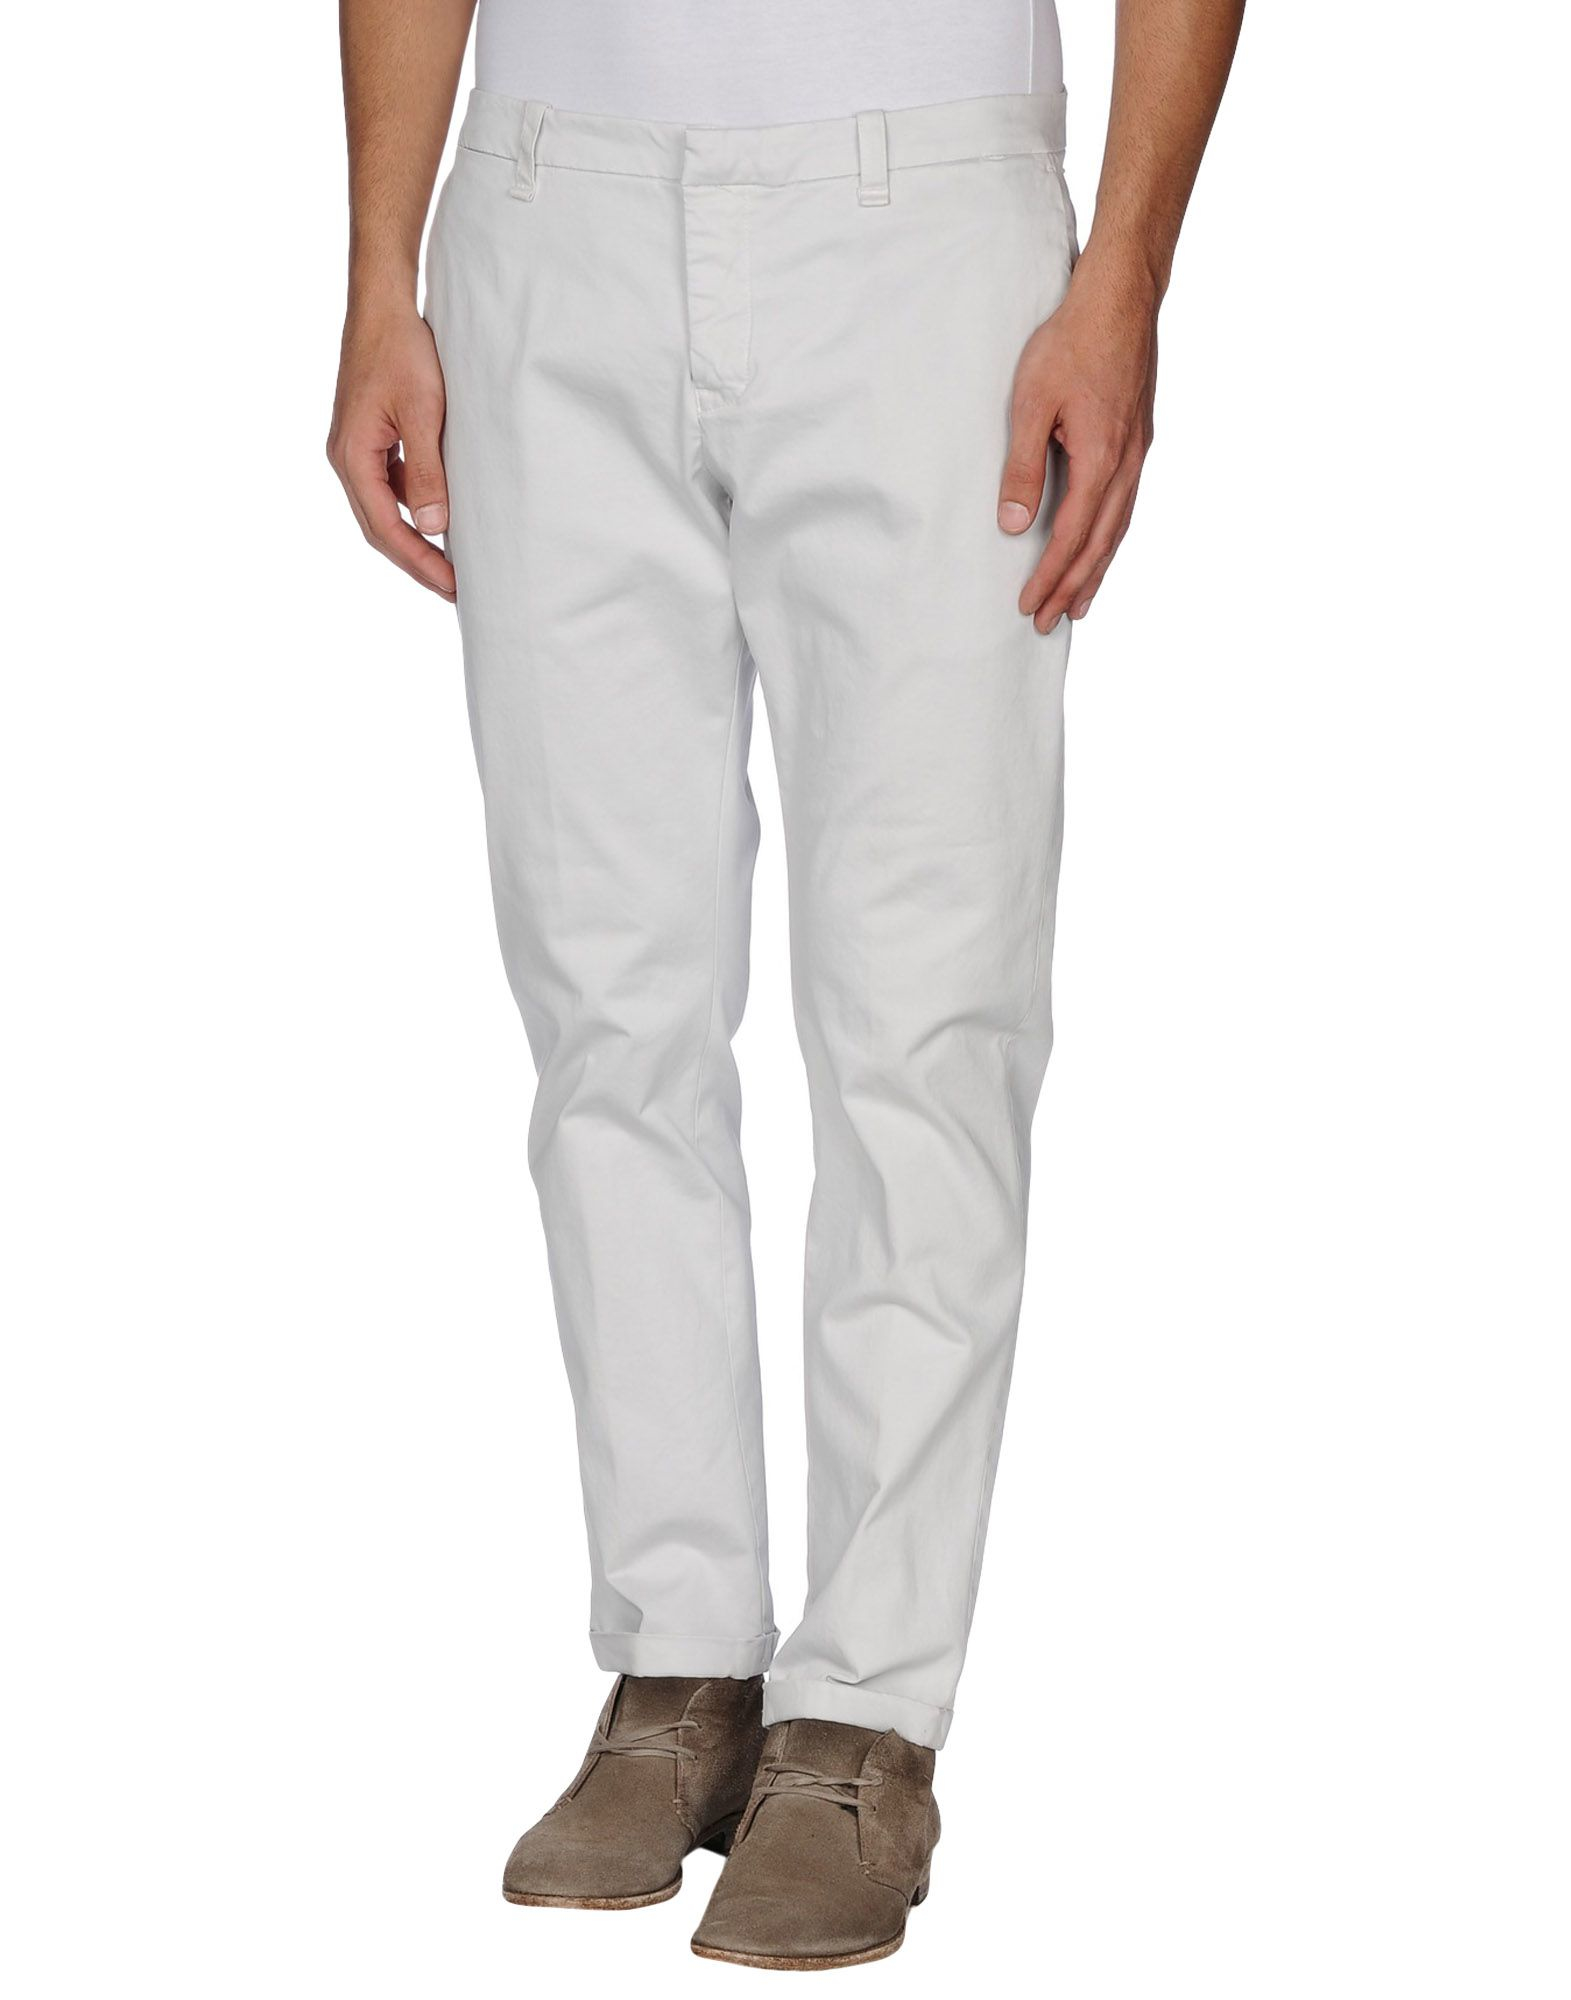 Dondup Cotton Casual Trouser in Light Grey (Grey) for Men